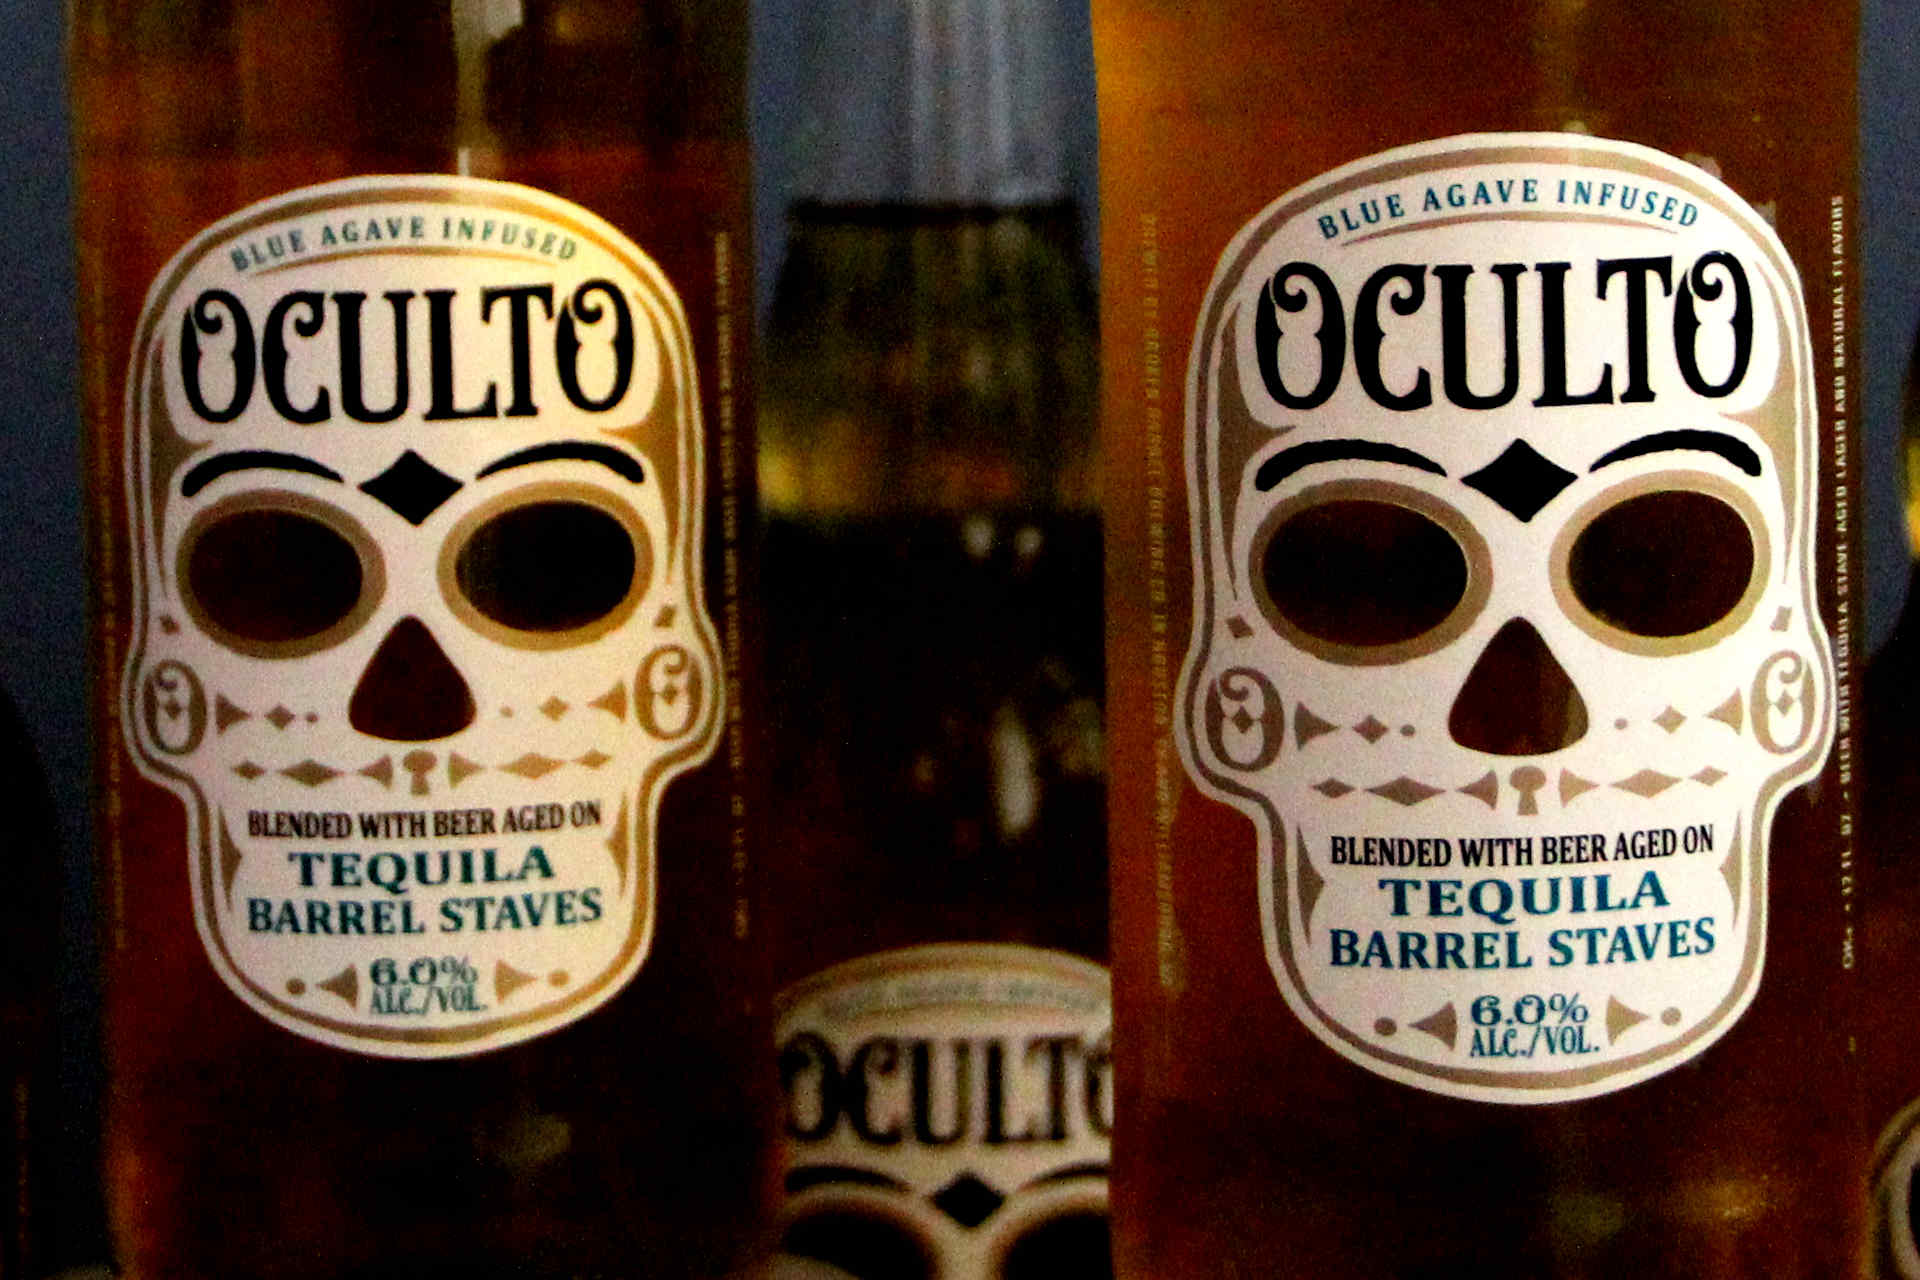 Oculto Beer Brand is about Mystery